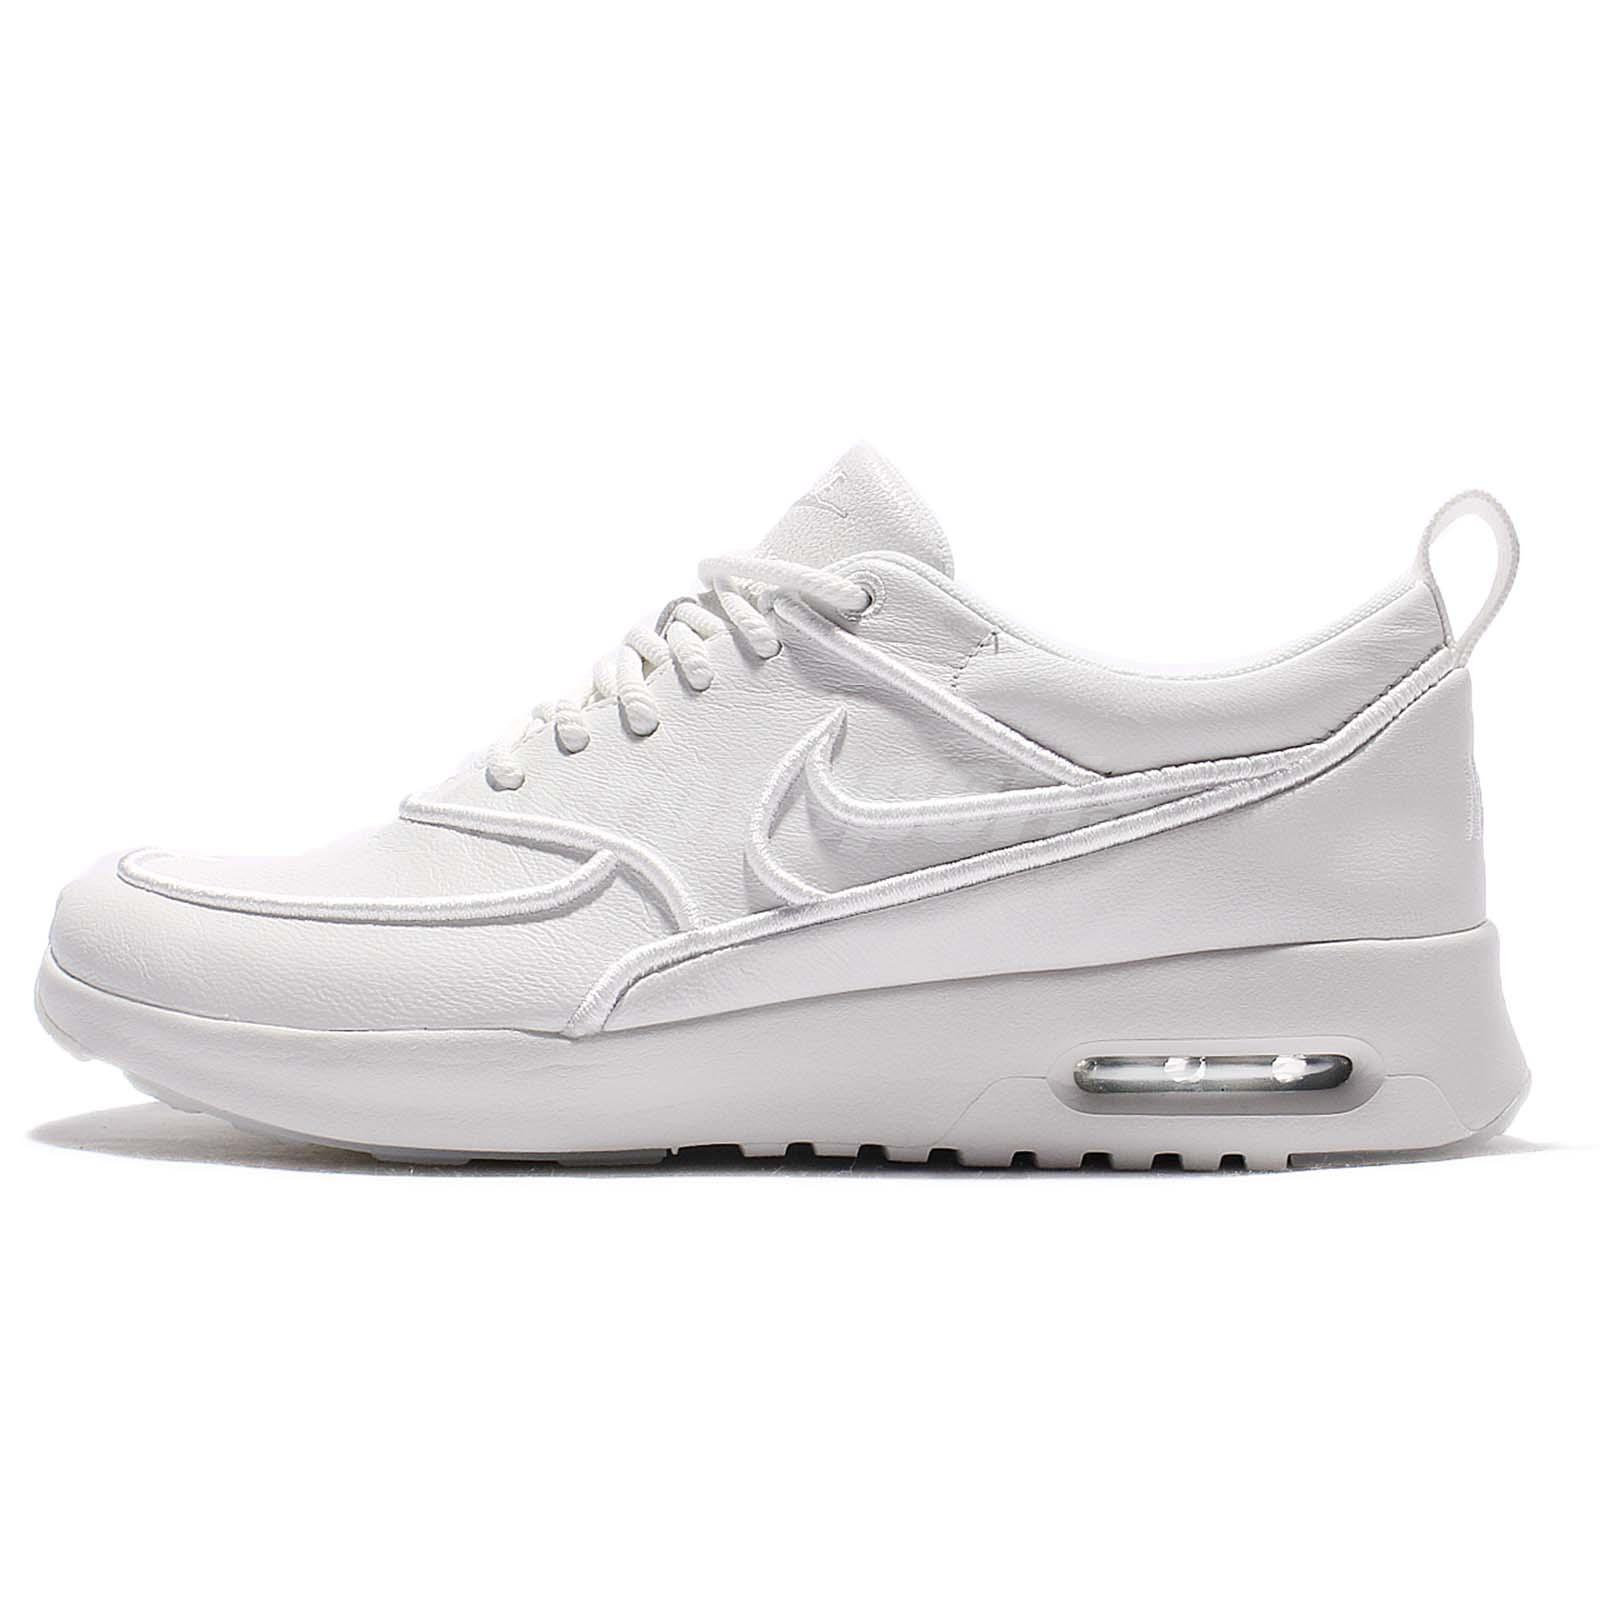 wmns nike air max thea ultra si white triple women running. Black Bedroom Furniture Sets. Home Design Ideas